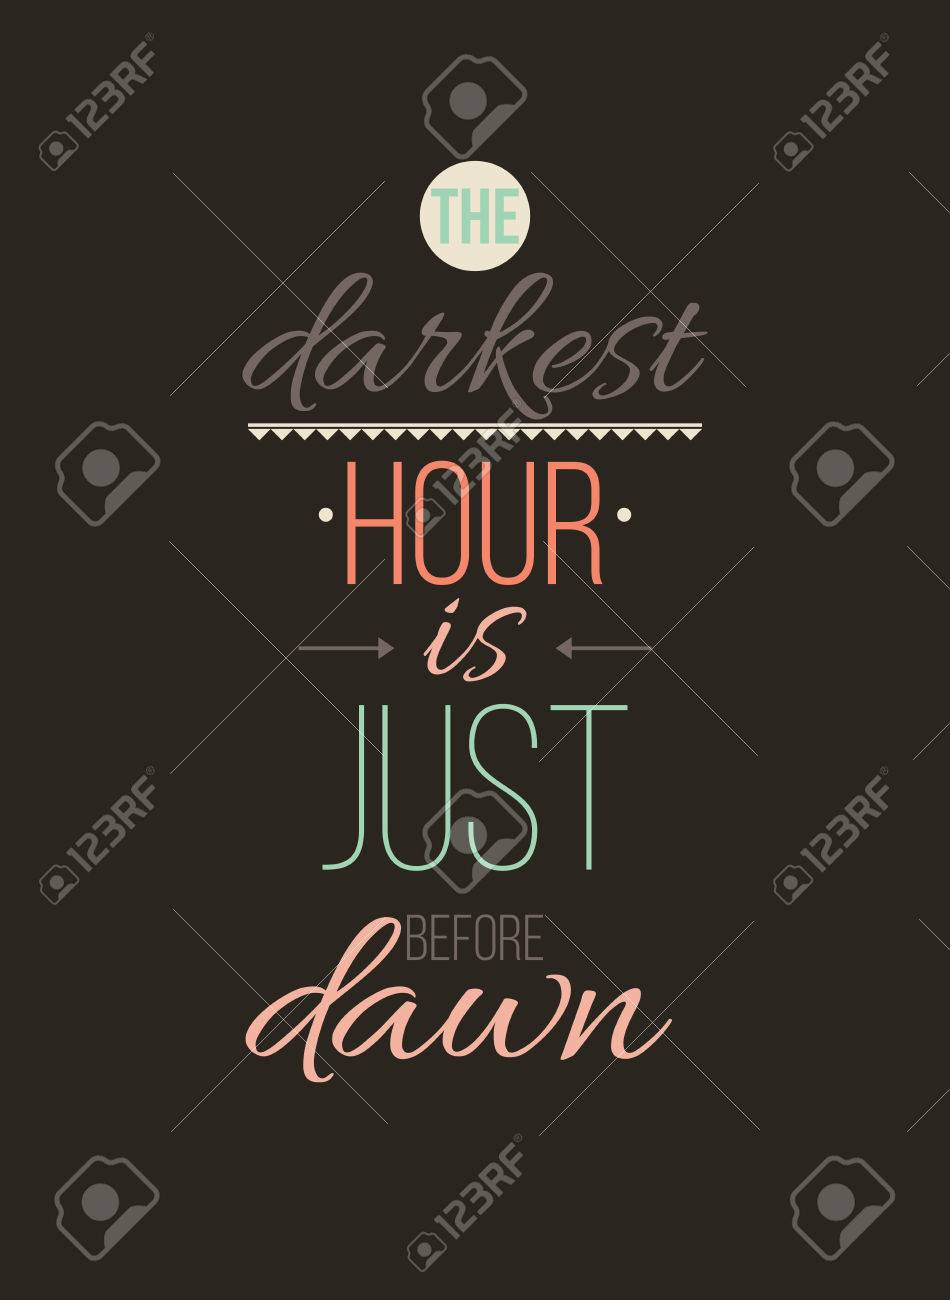 The darkest hour is just before dawn  Inspirational Quote Poster